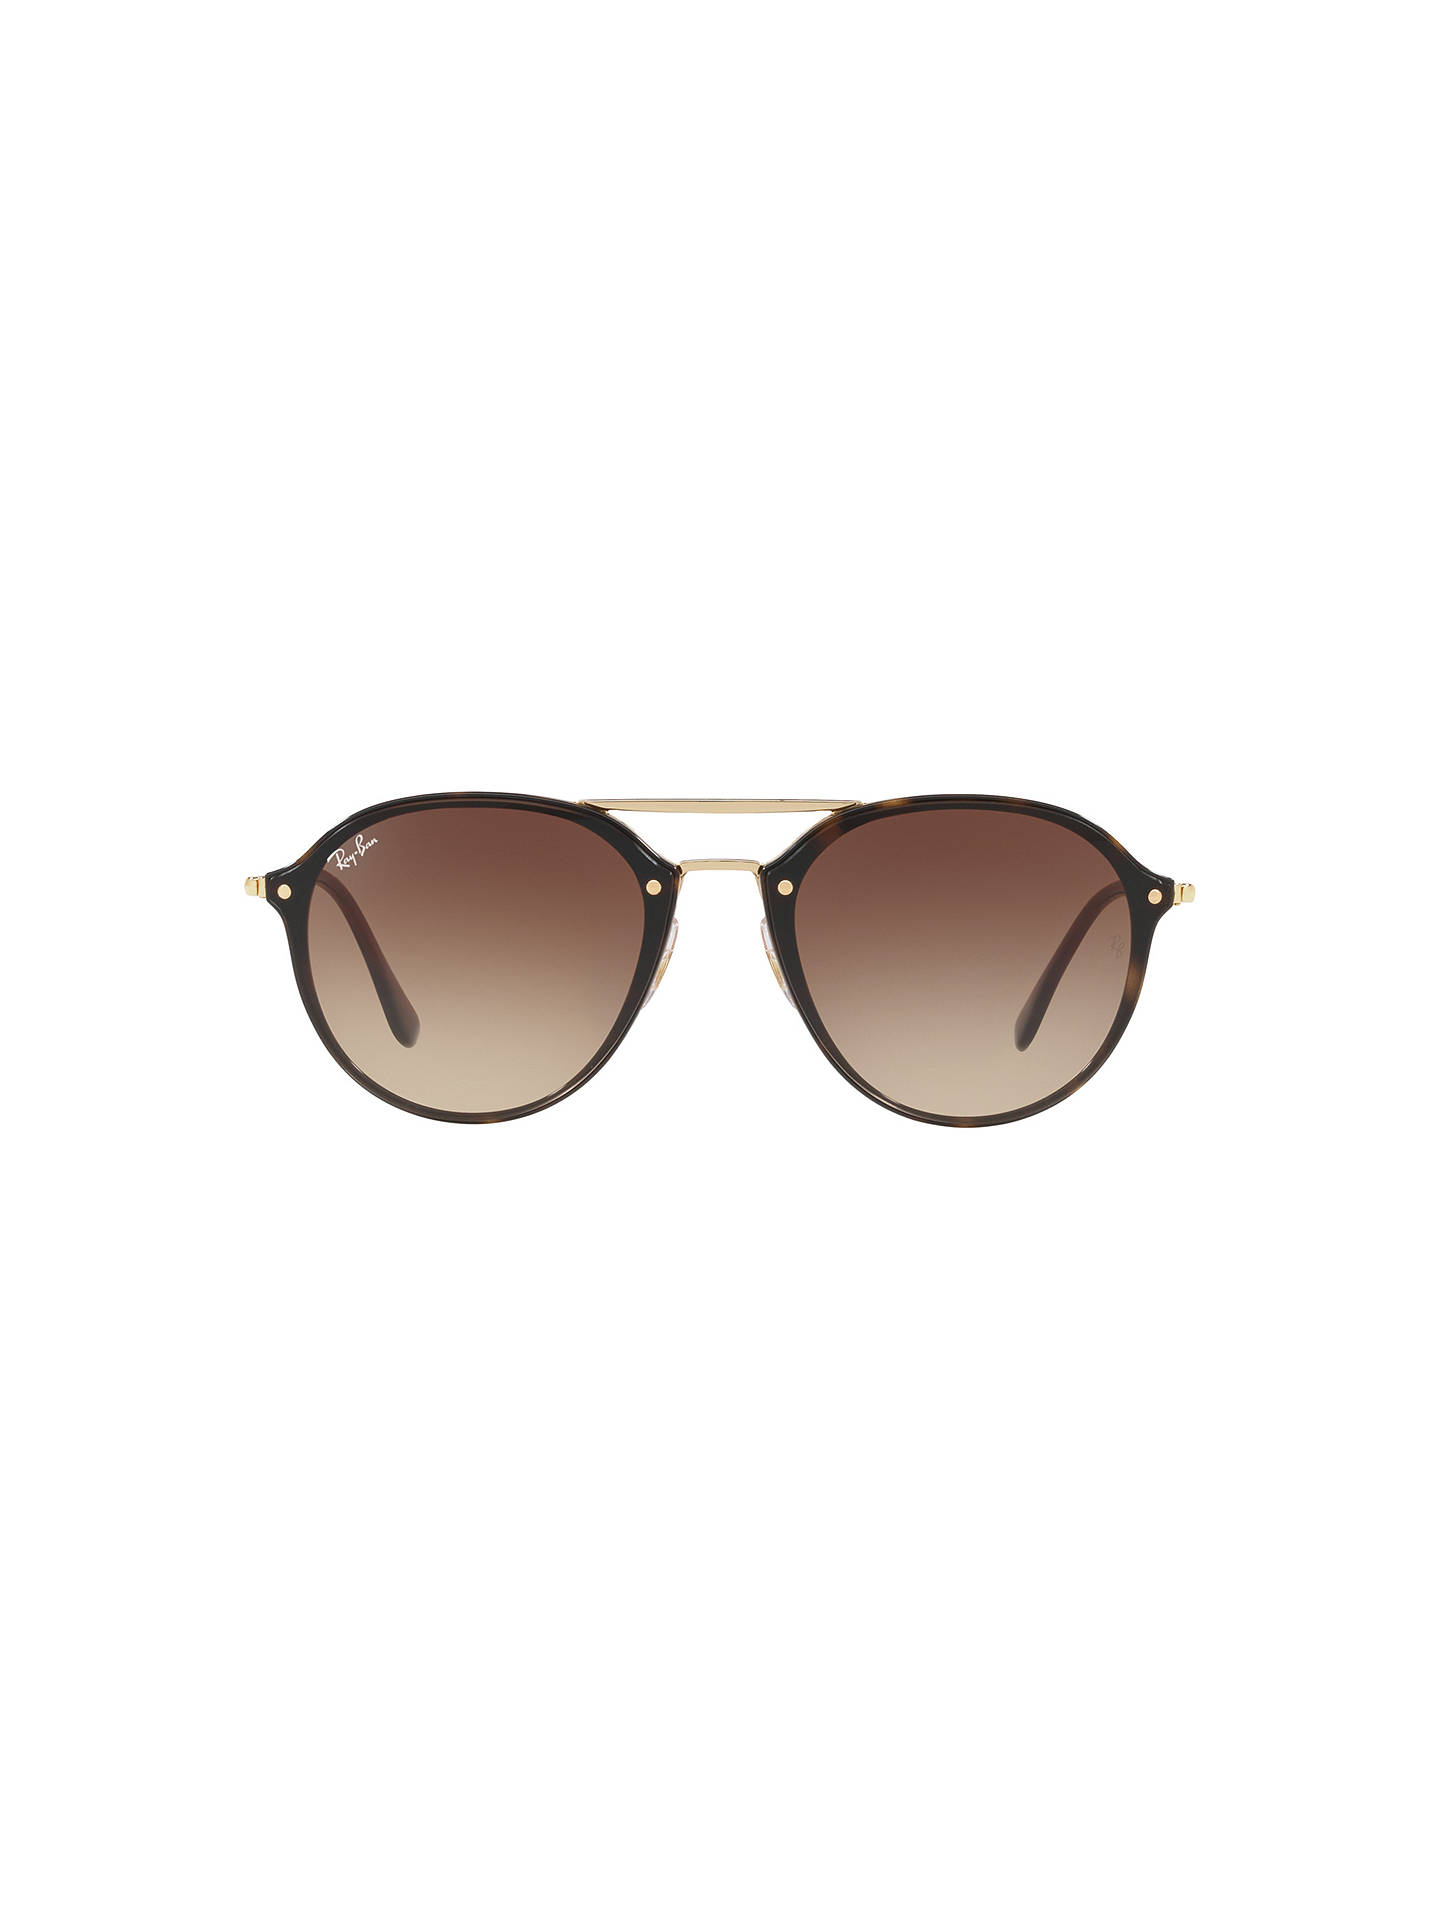 BuyRay-Ban RB4292 Oval Blaze Sunglasses, Gold Brown Online at johnlewis.com  ... 2c60683e0b97